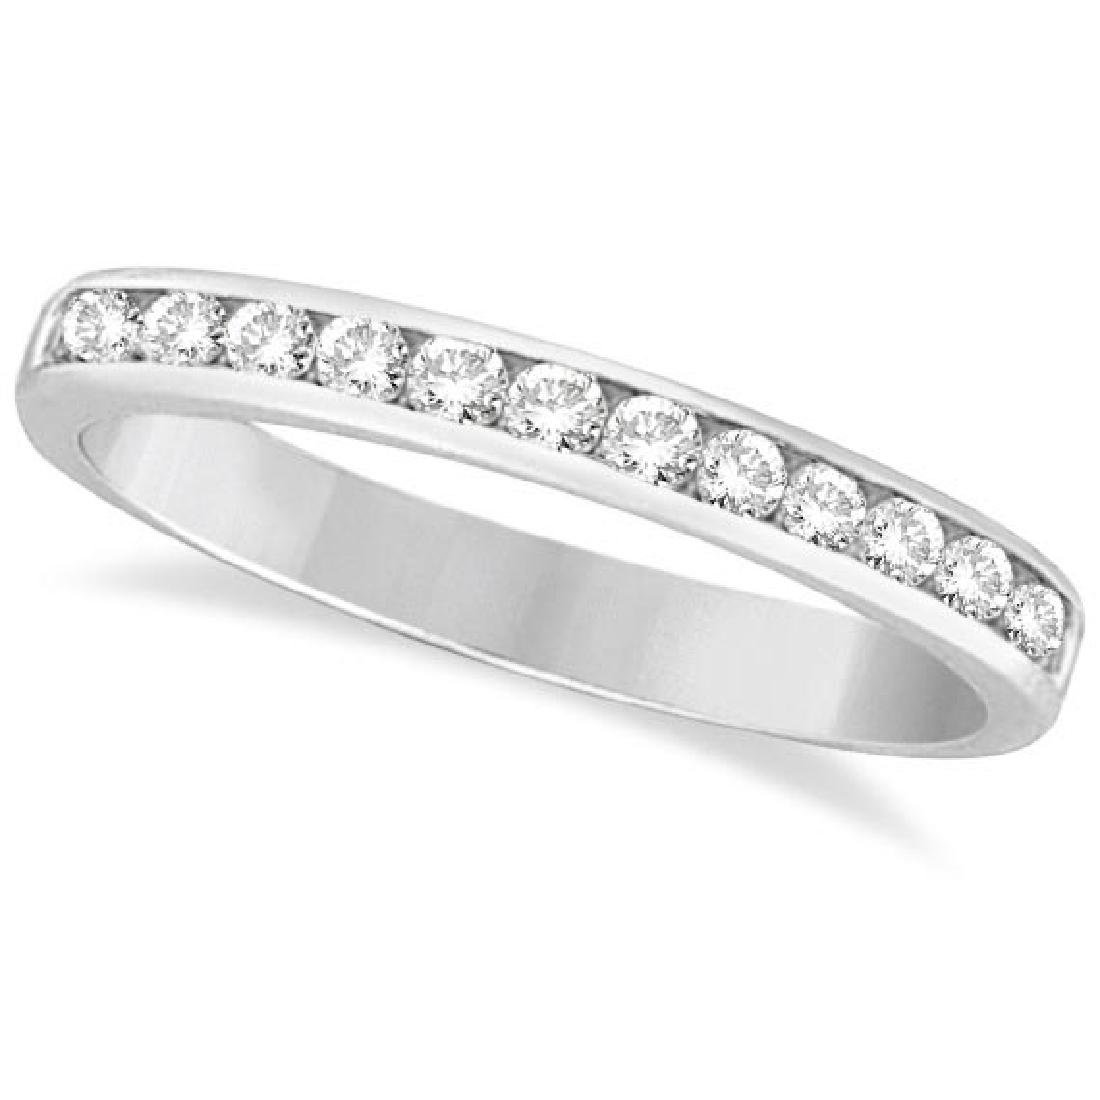 Channel-Set Diamond Ring Band in 14k White Gold (0.33 c